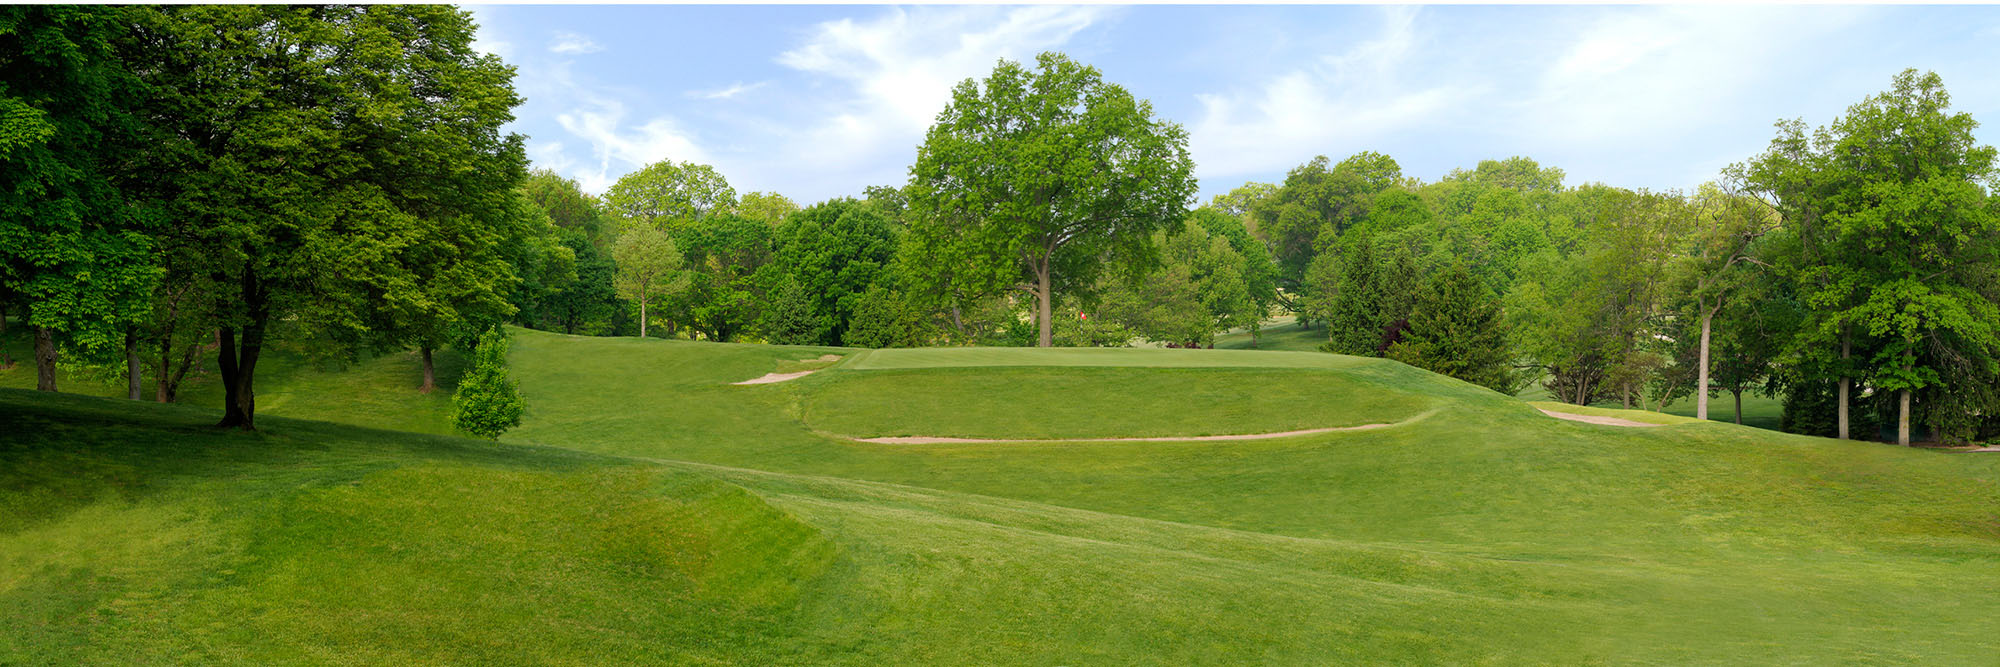 Golf Course Image - St. Louis Country Club No. 7